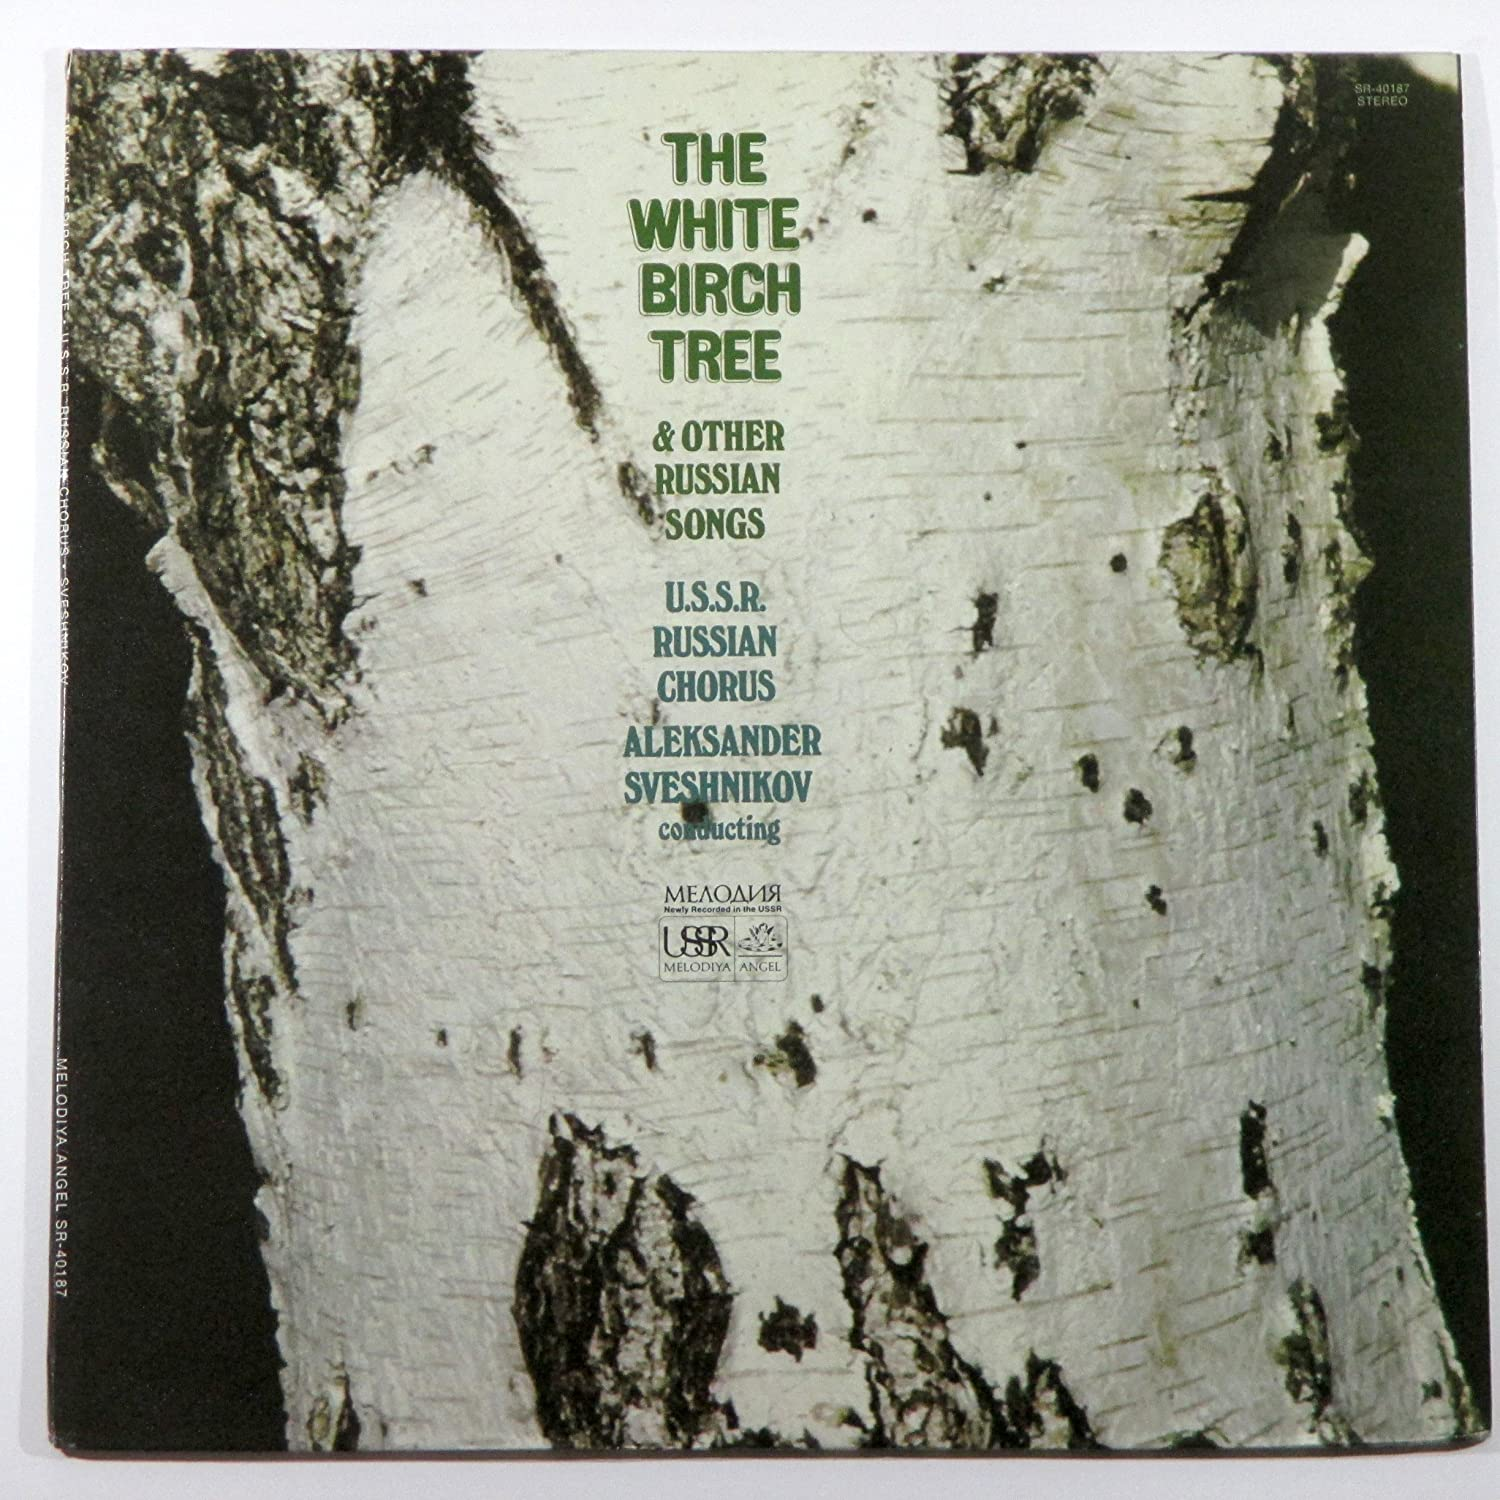 Shops Birch in the USSR 62